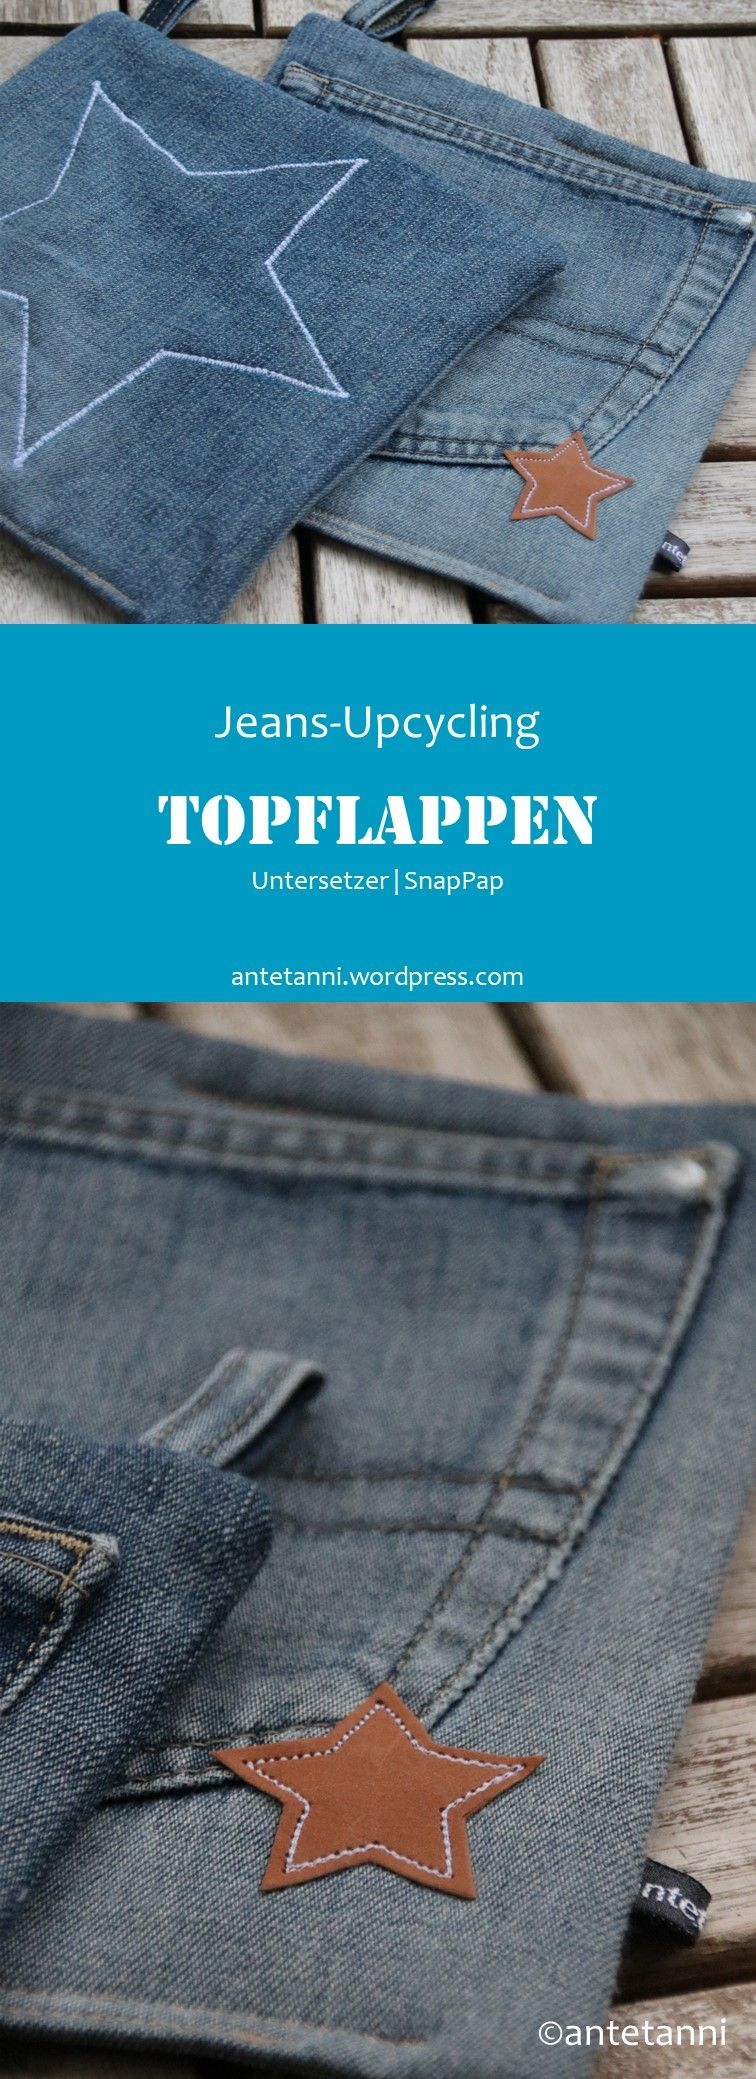 Photo of Topflappen Untersetzer Jeans-Upcycling